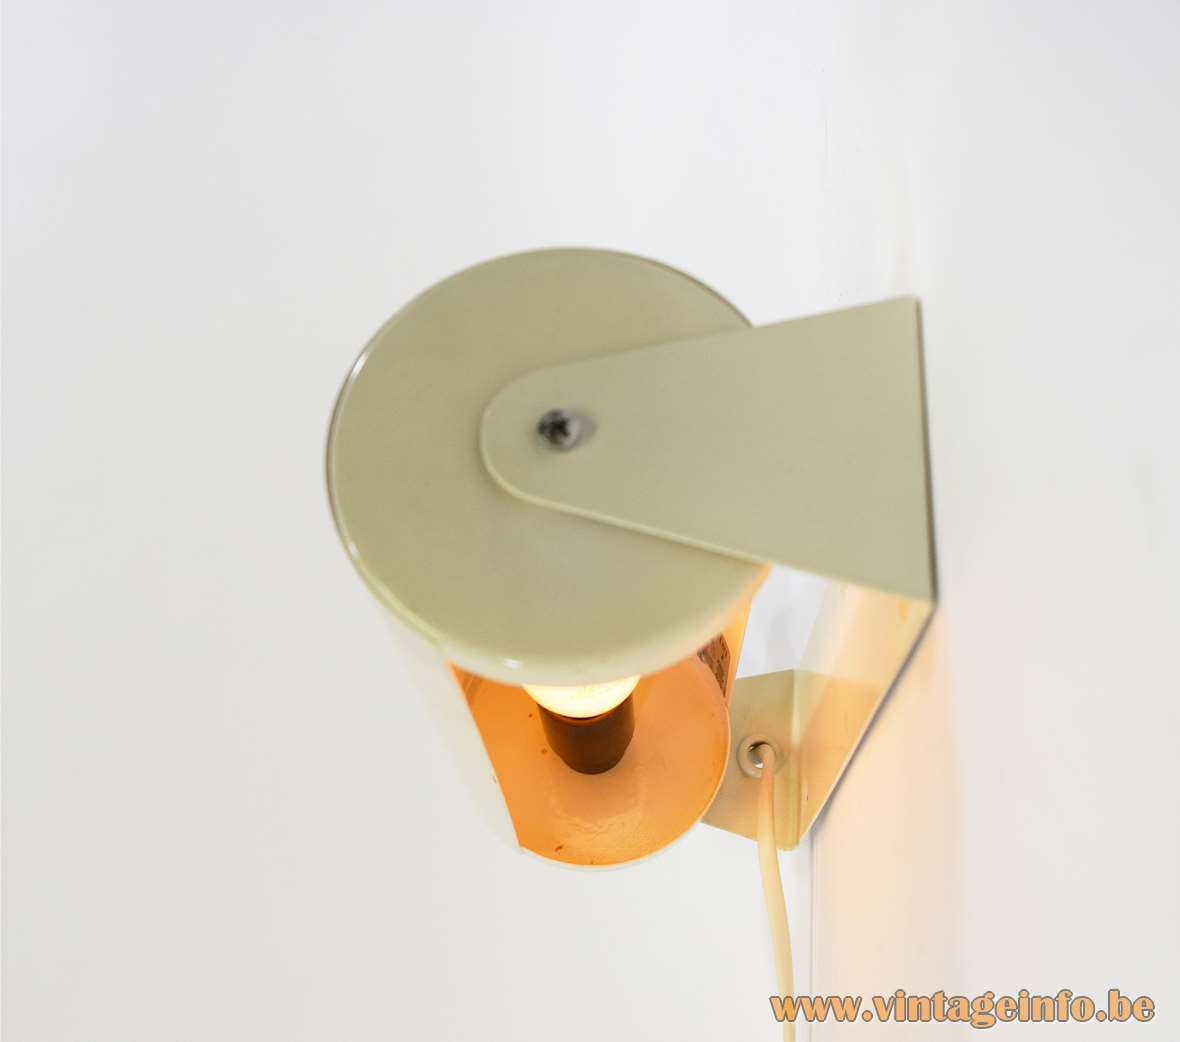 IKEA Lod wall lamp round white metal cylinder tubular lampshade 1980s 1990s 2000s E14 socket Sweden